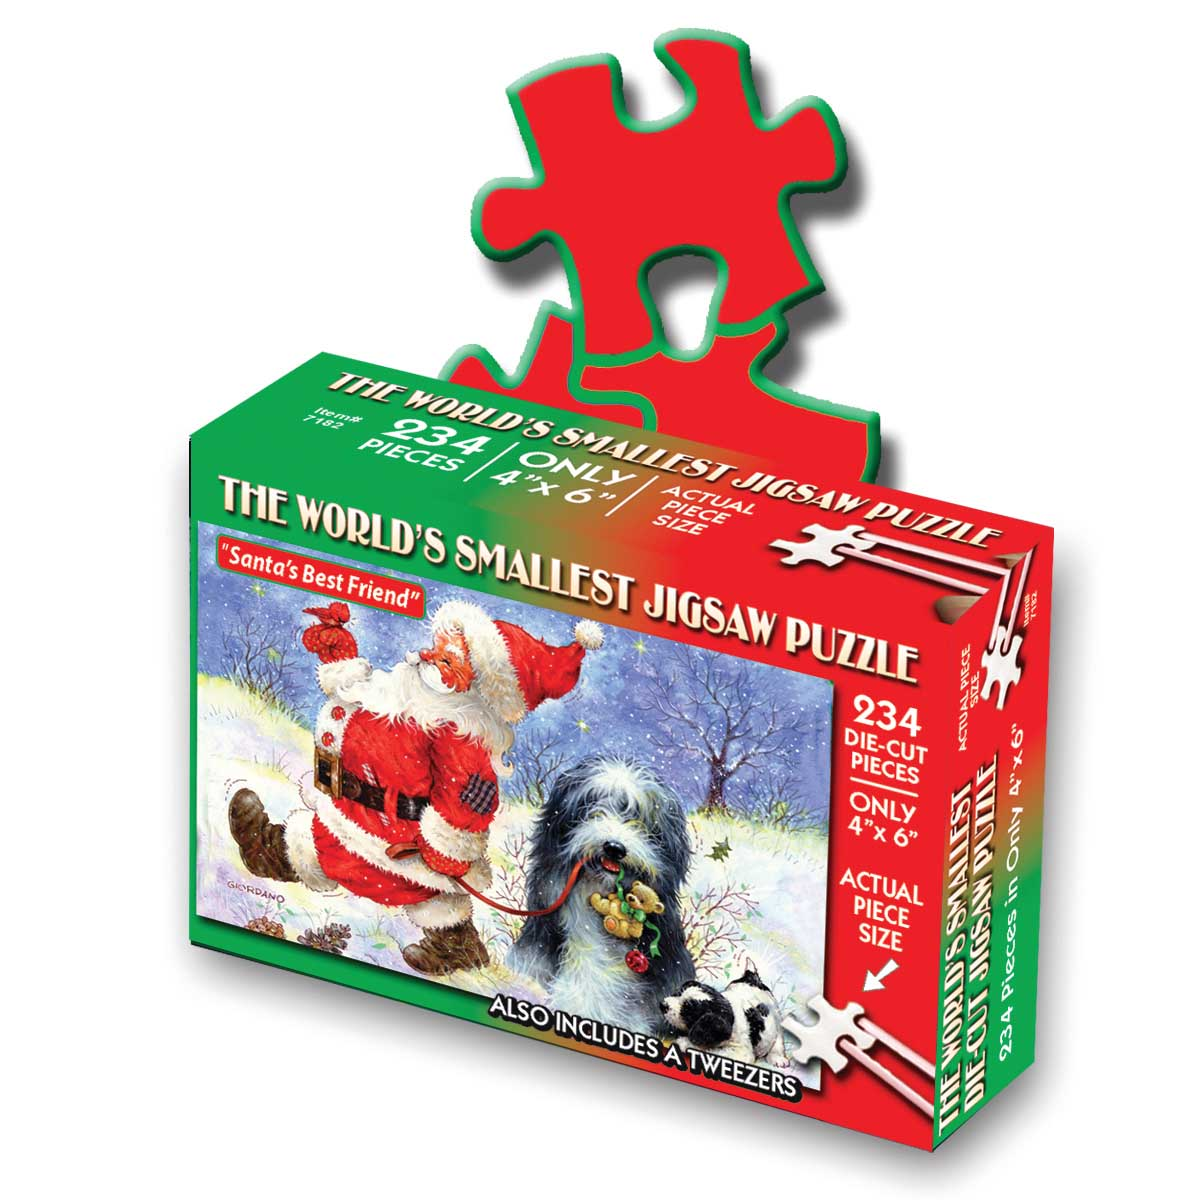 World's Smallest Jigsaw Puzzle - Santa's Best Friend Christmas Jigsaw Puzzle